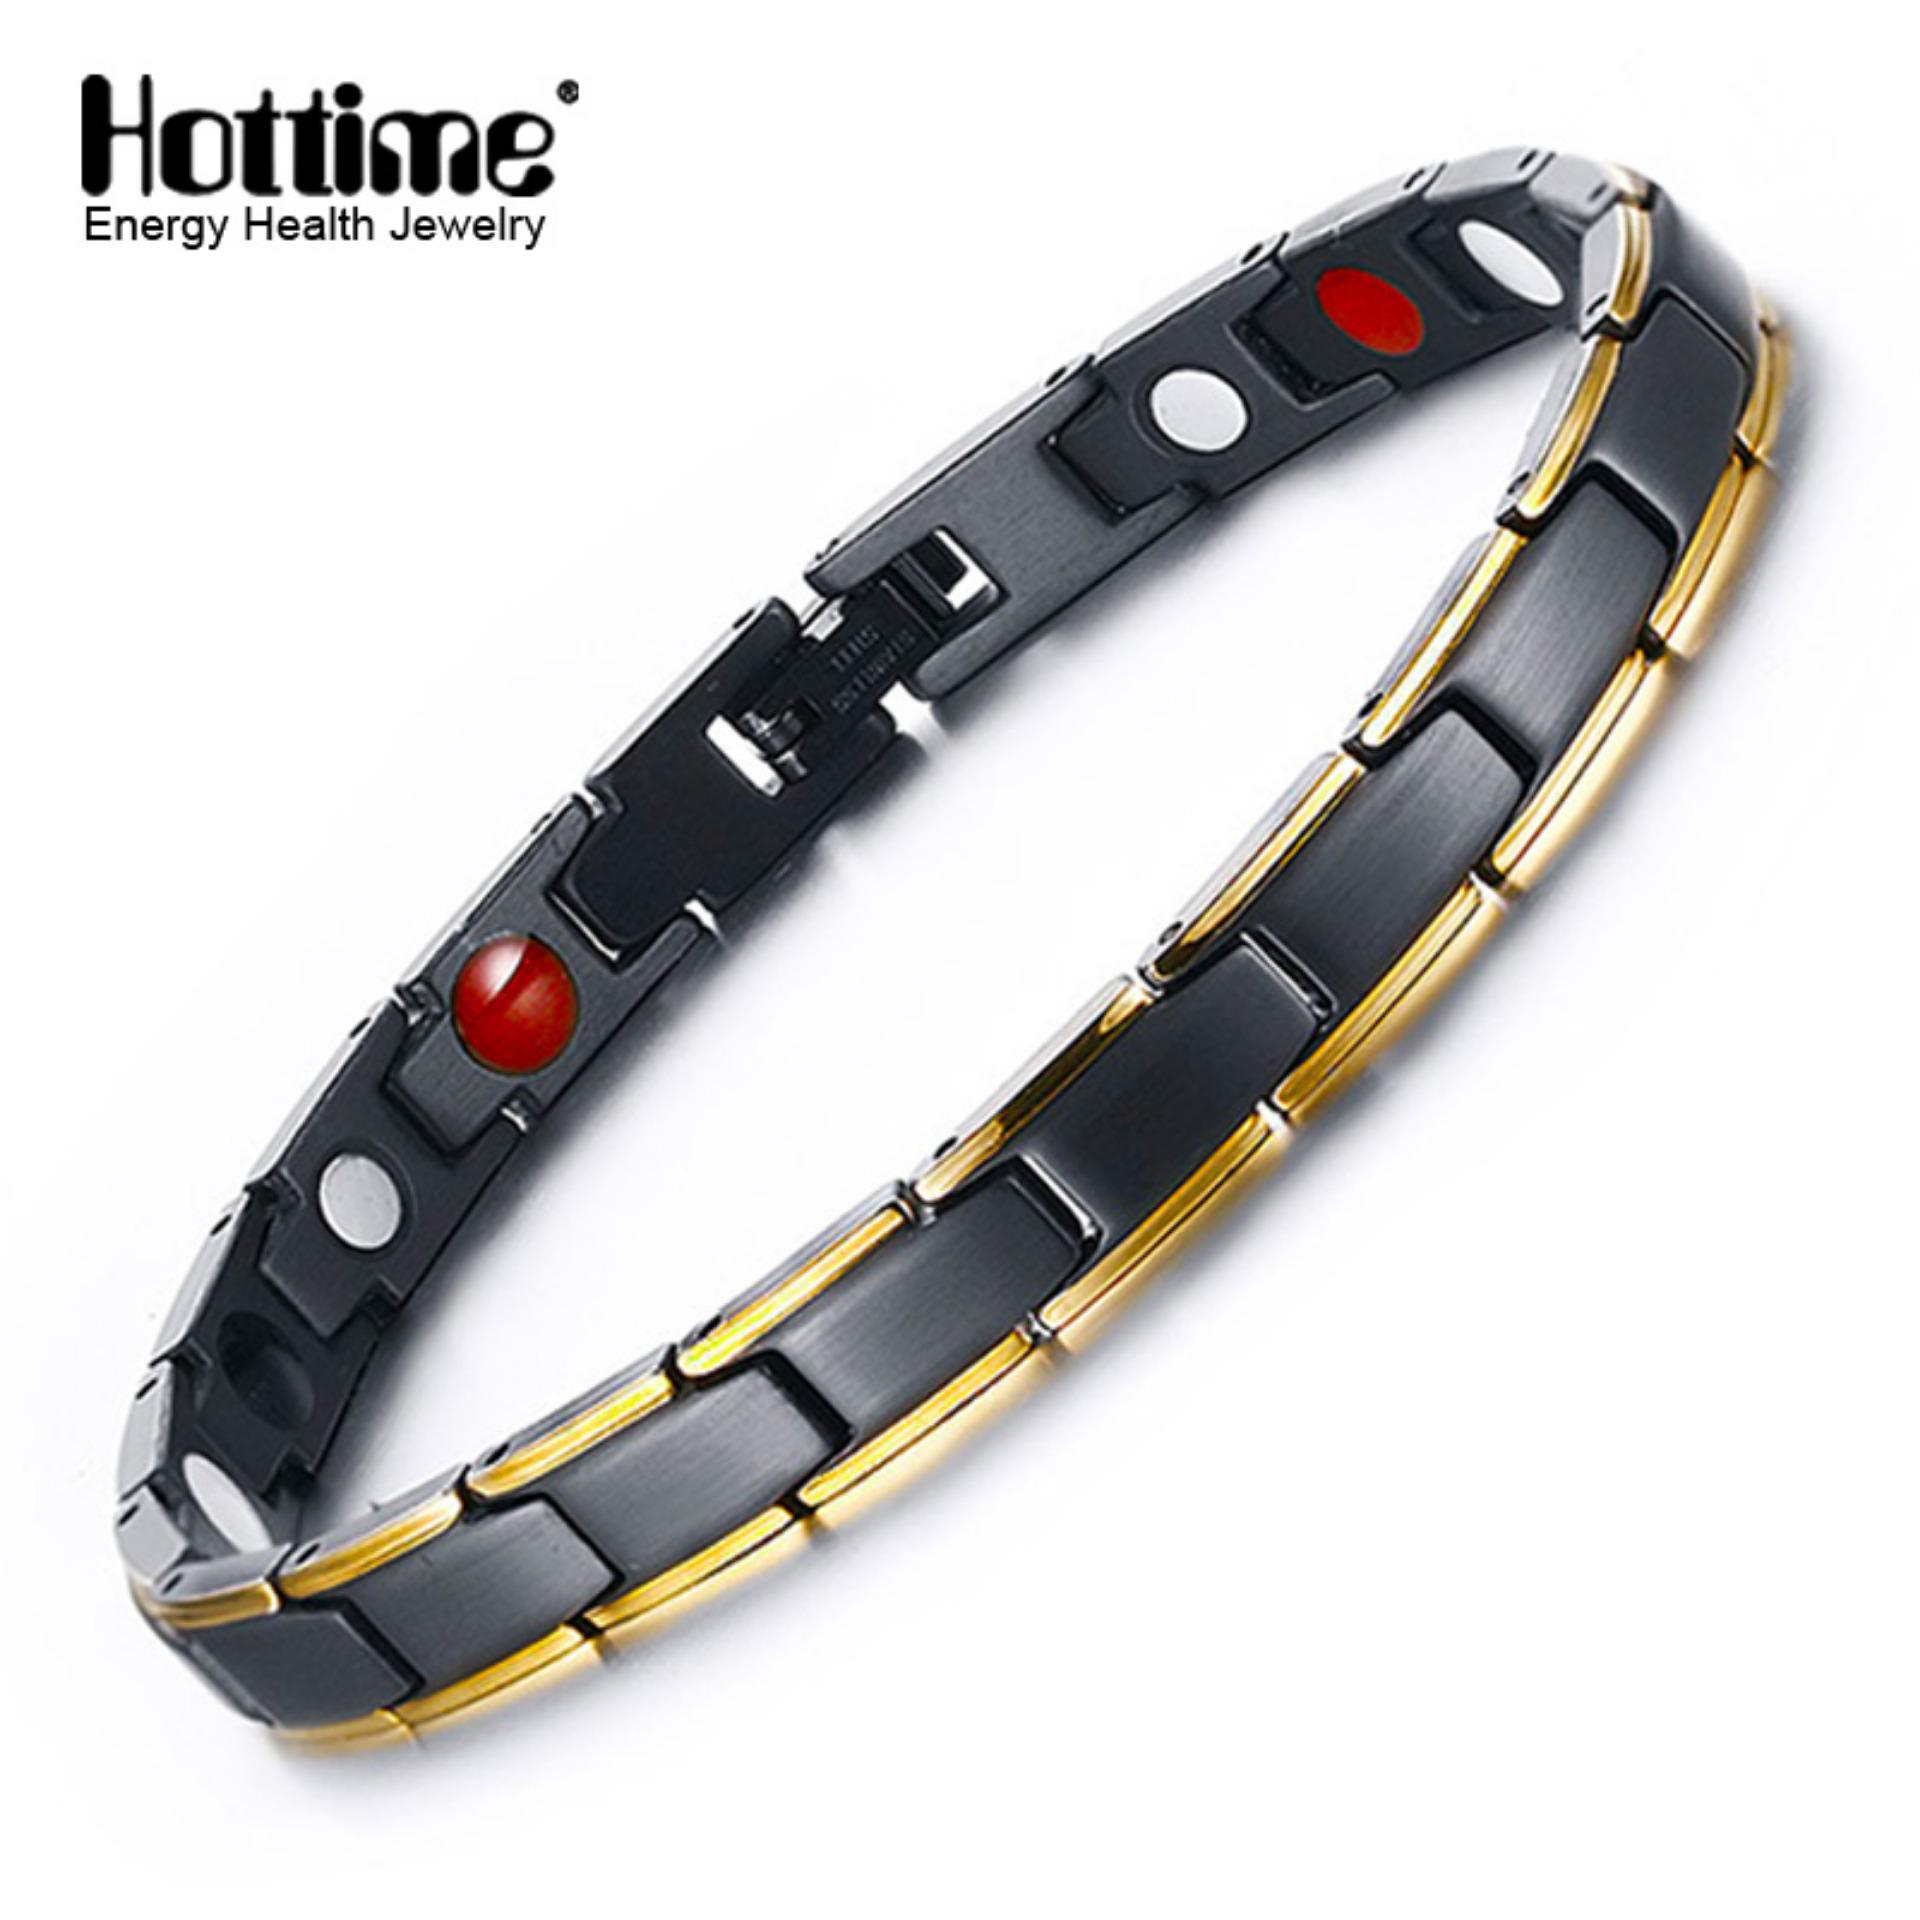 Harga Hottime 4 In 1 Magnetic New Fashion Lovers Jewelry Steel Black Gold Titanium Bracelet For Women And Men Never Fade Top Quality 10089 Intl Seken